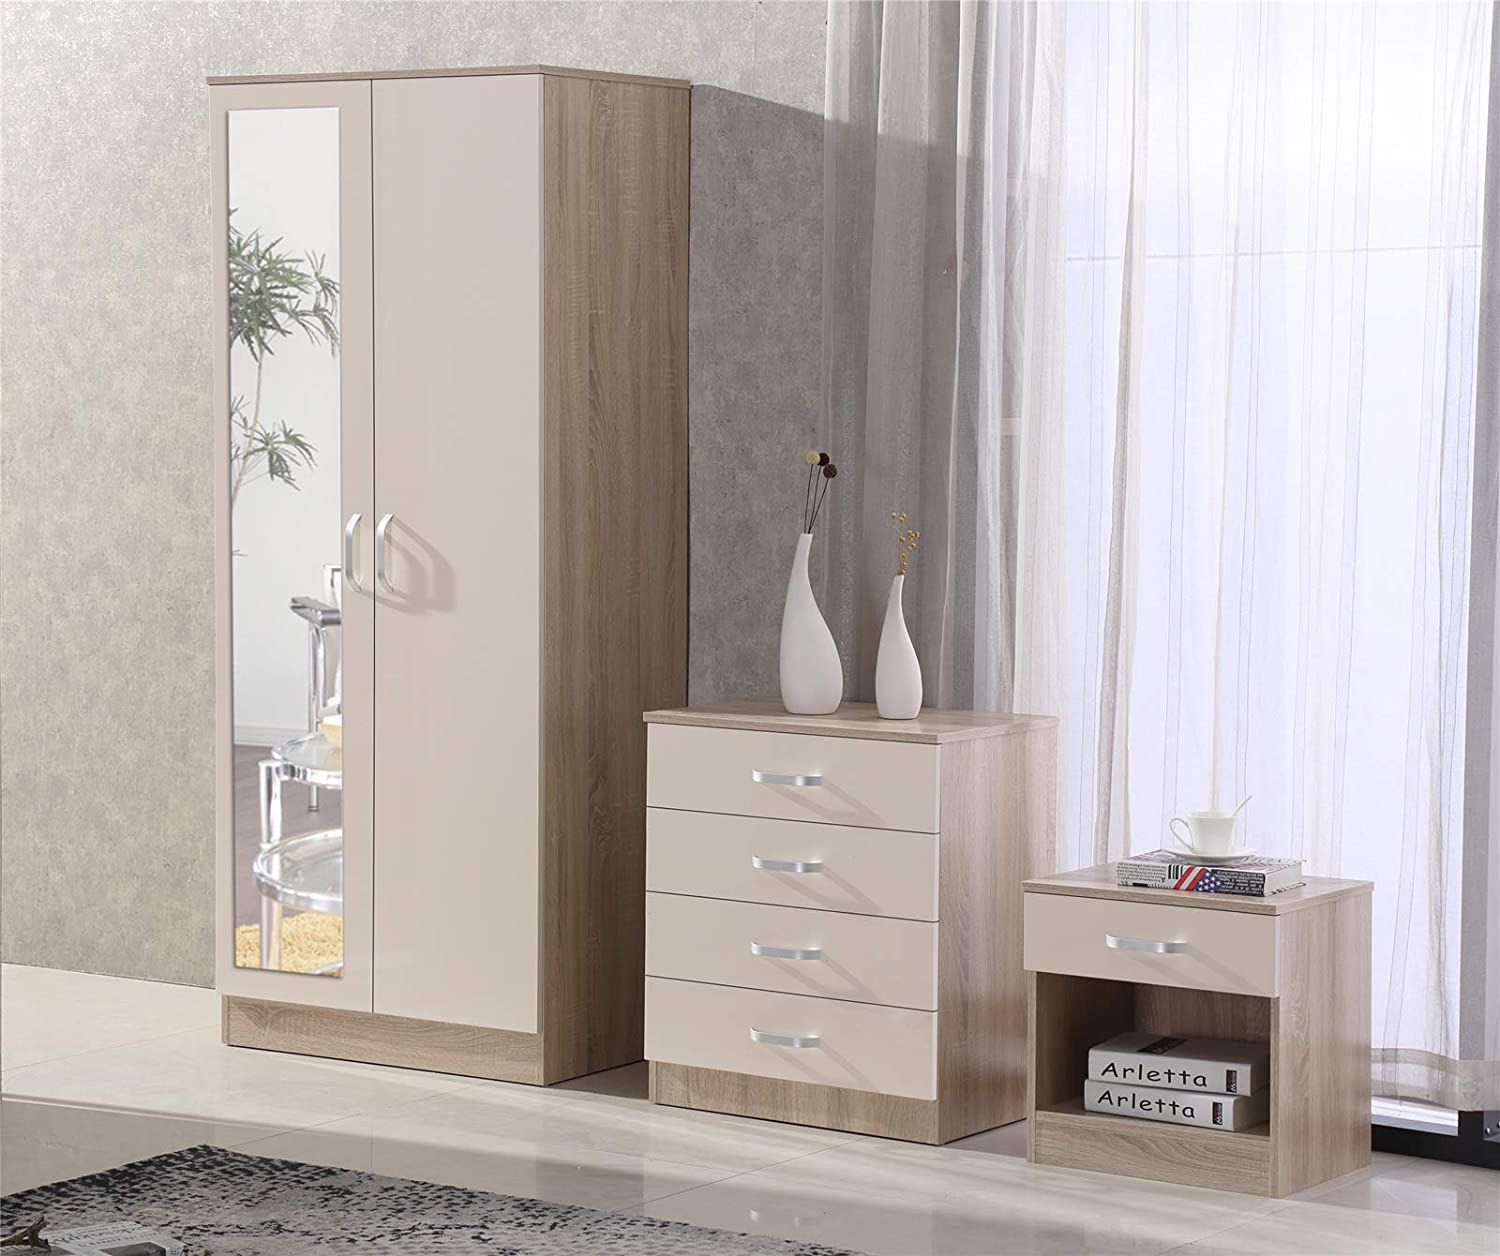 Fairpak Gladini High Gloss Mirrored 3 Piece Bedroom Furniture Set